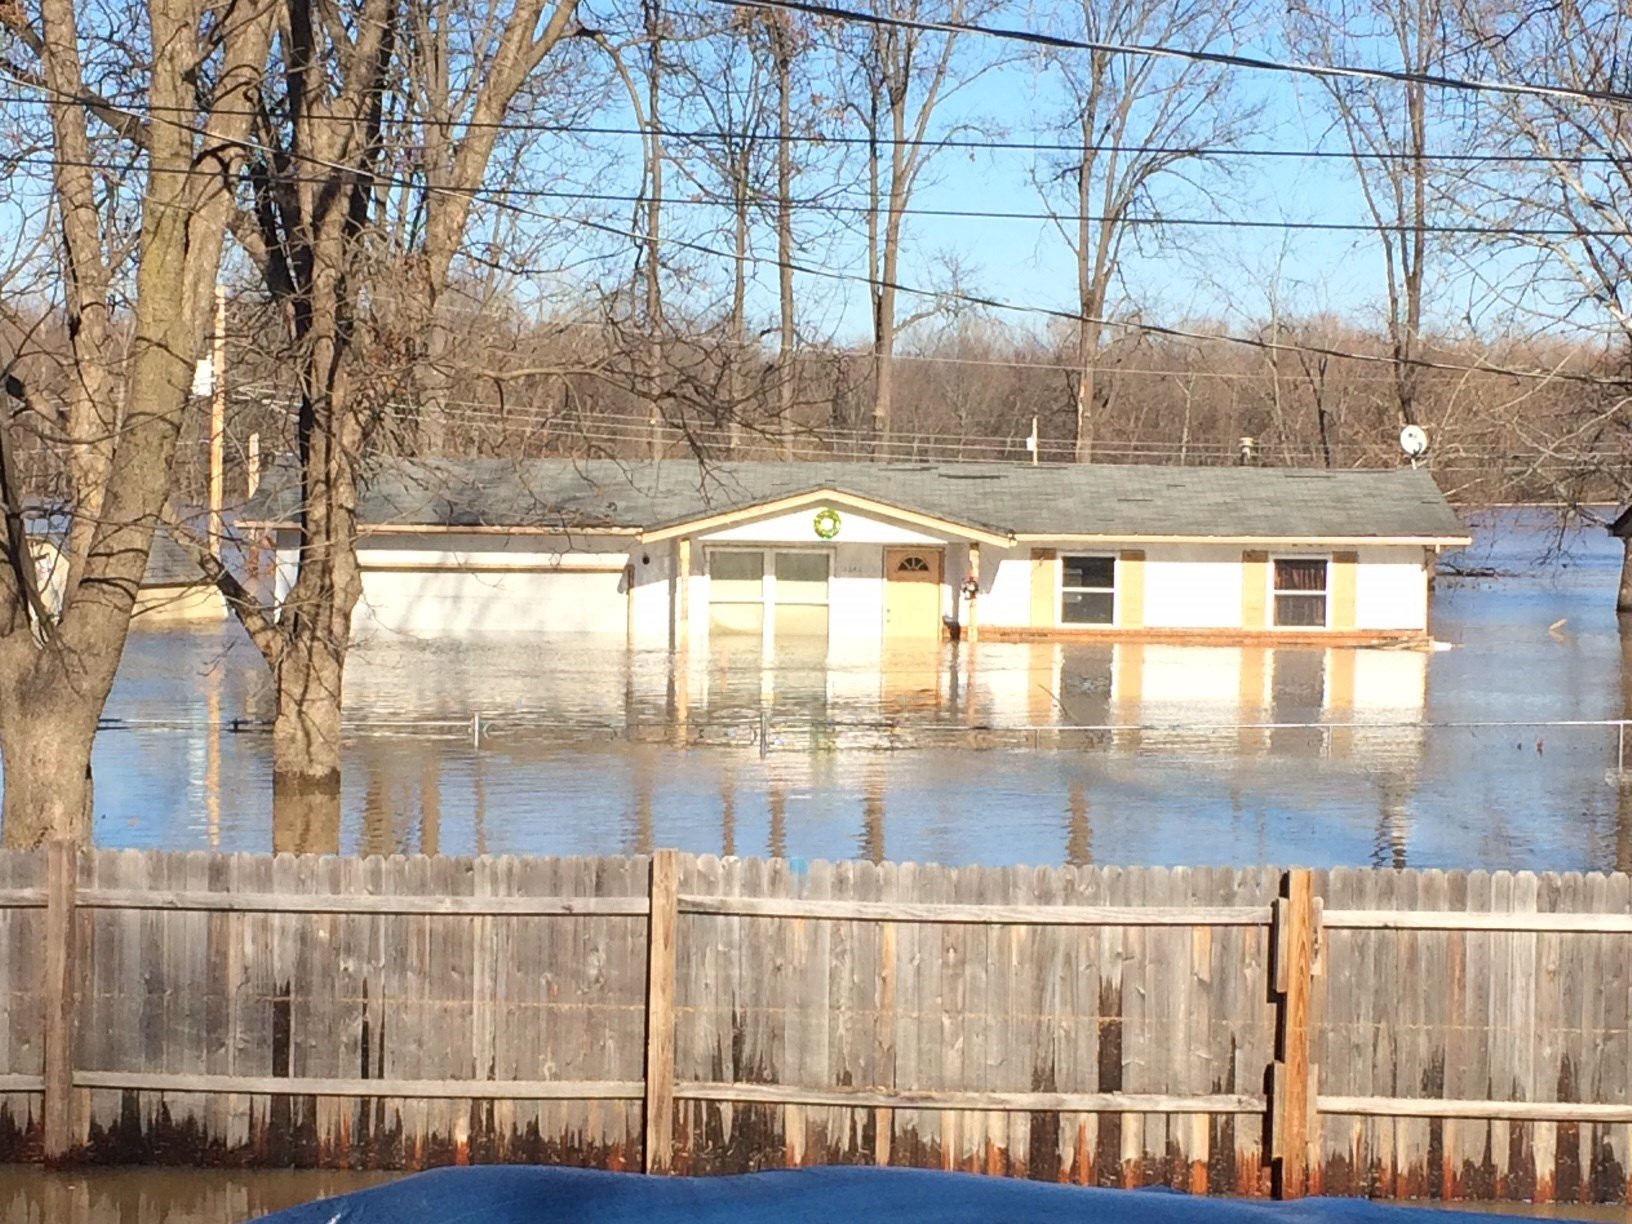 An Arnold house flooded by the Meremac River. (Credit: KMOV-TV)